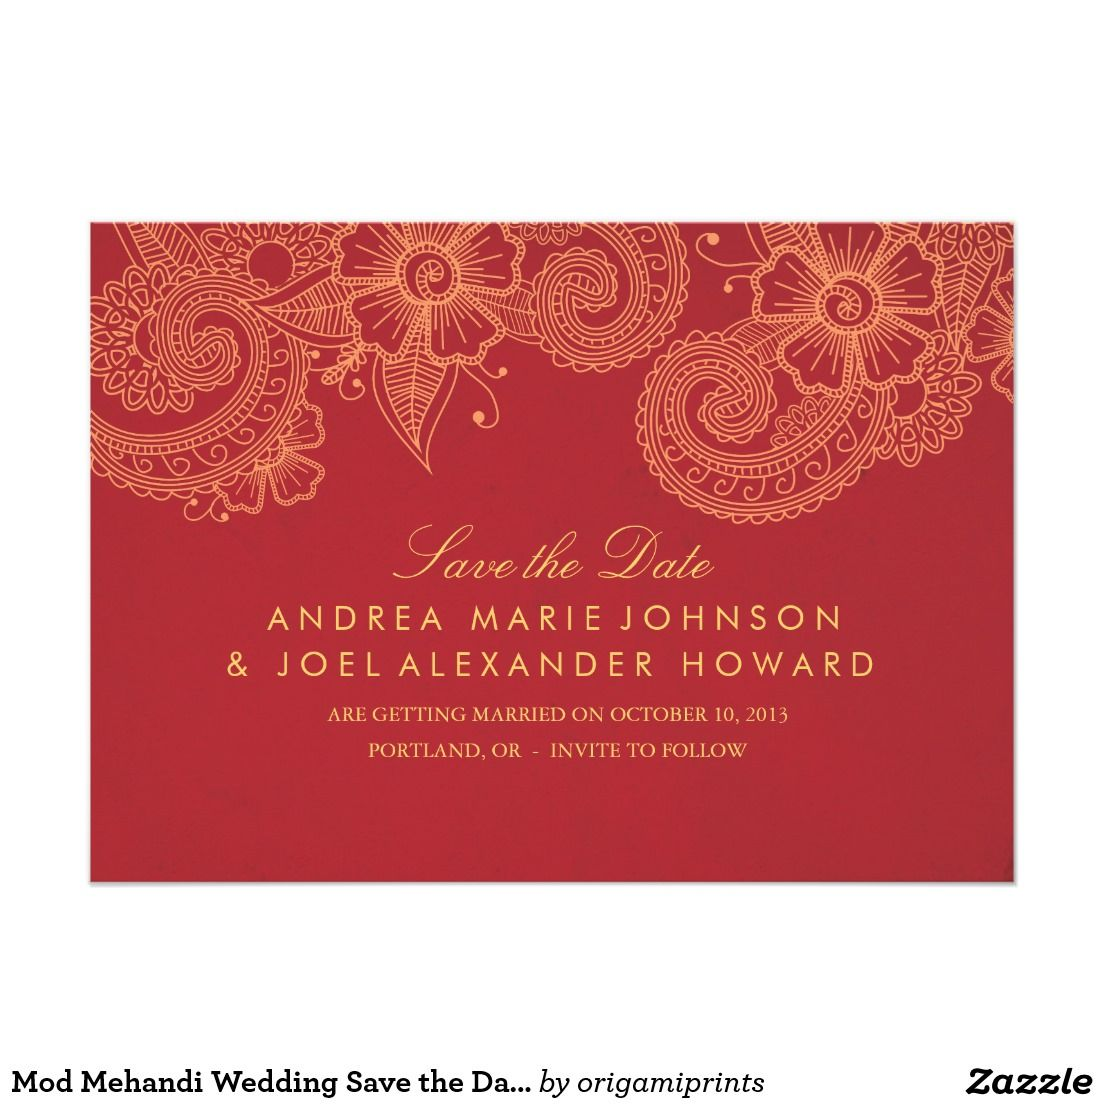 Mod Mehandi Wedding Save the Date Card Beautifully printed save the ...